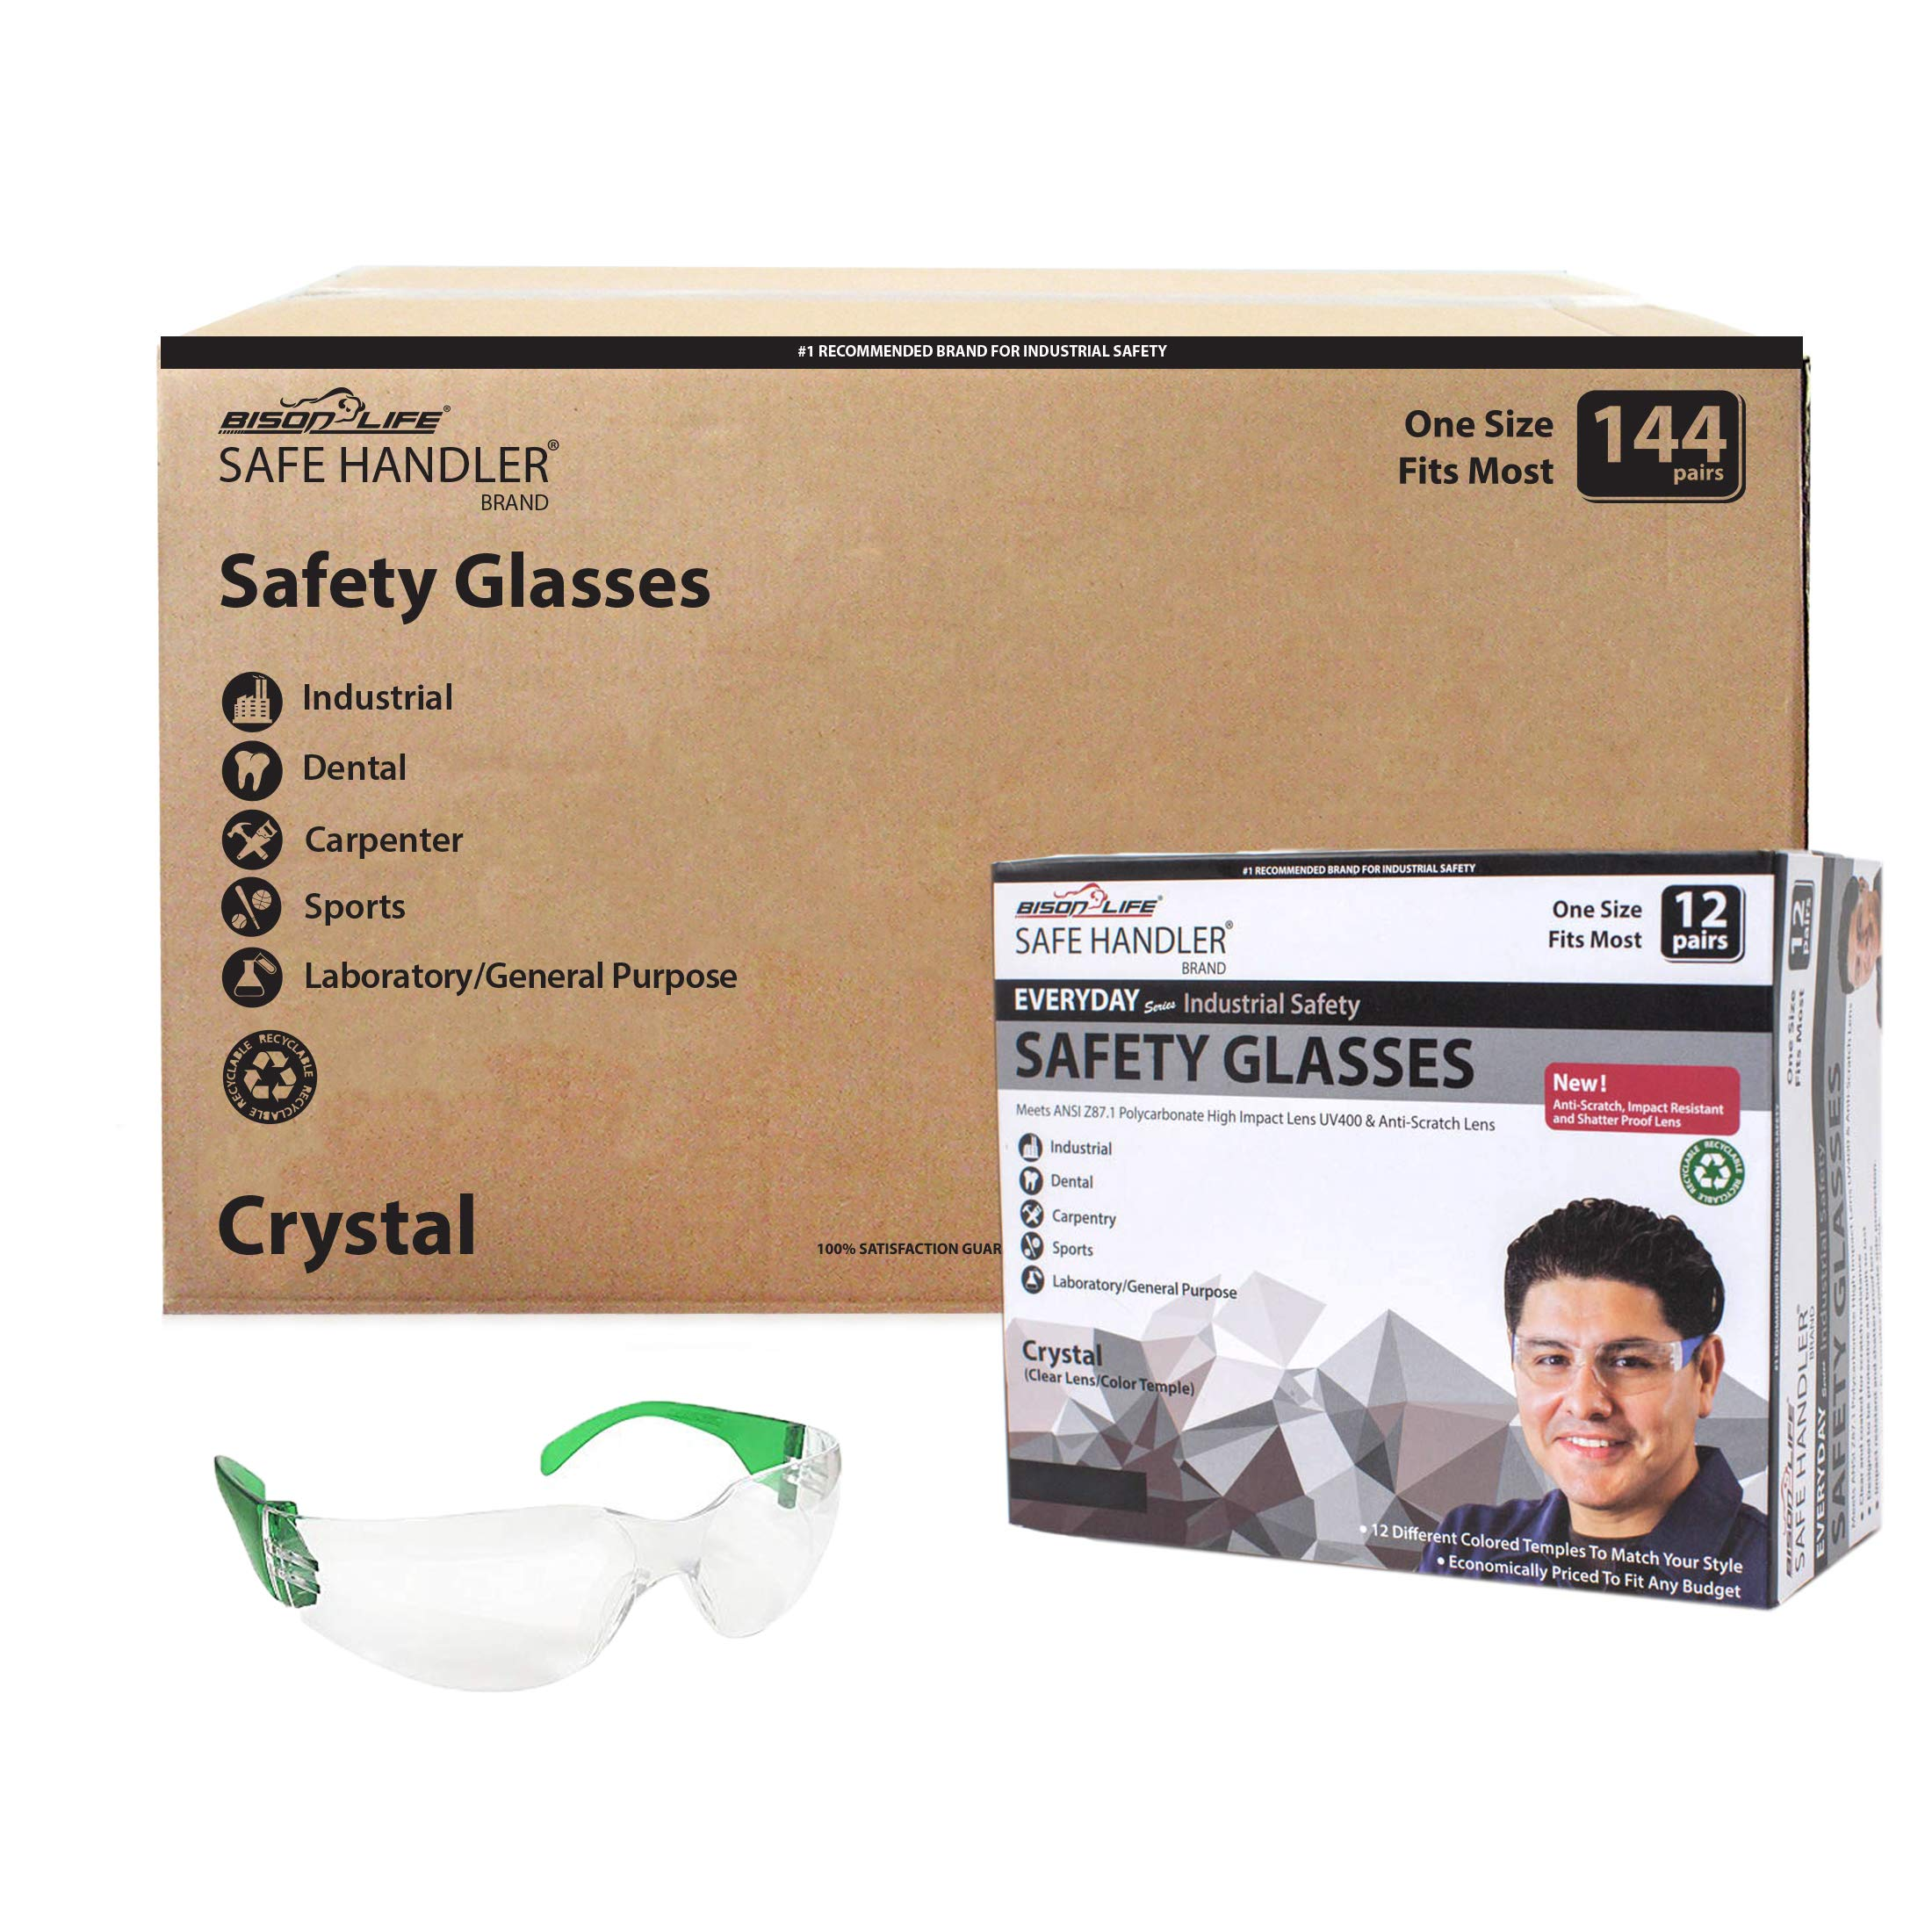 SAFE HANDLER Protective Safety Glasses, Clear Polycarbonate Impact and Ballistic Resistant Lens - Green Temple (Case of 12 Boxes, 144 Pairs Total)